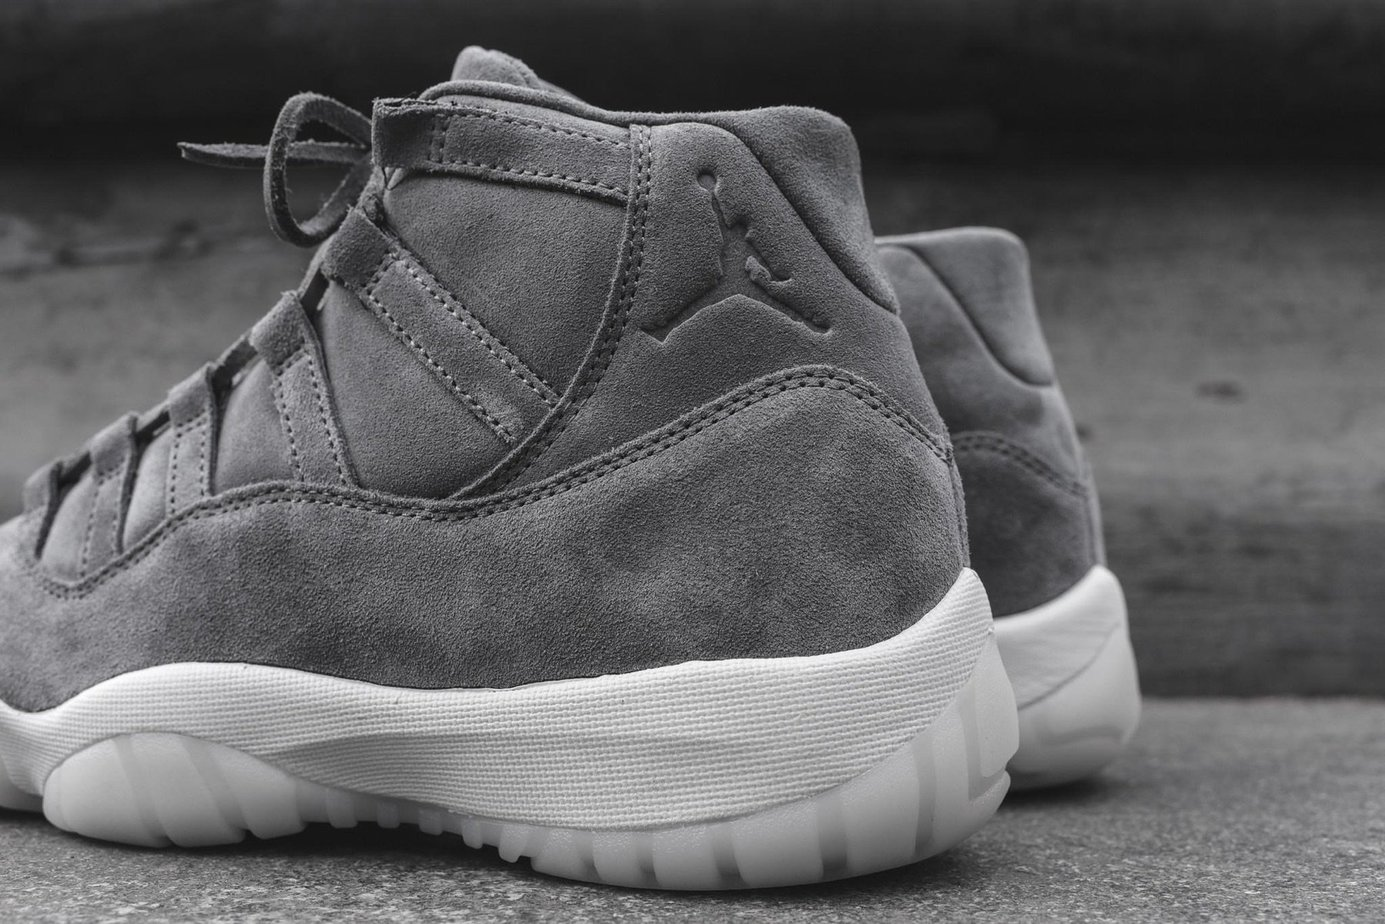 16d59de166b663 Air Jordan 11 Pinnacle Grey Suede Now Available - JustFreshKicks